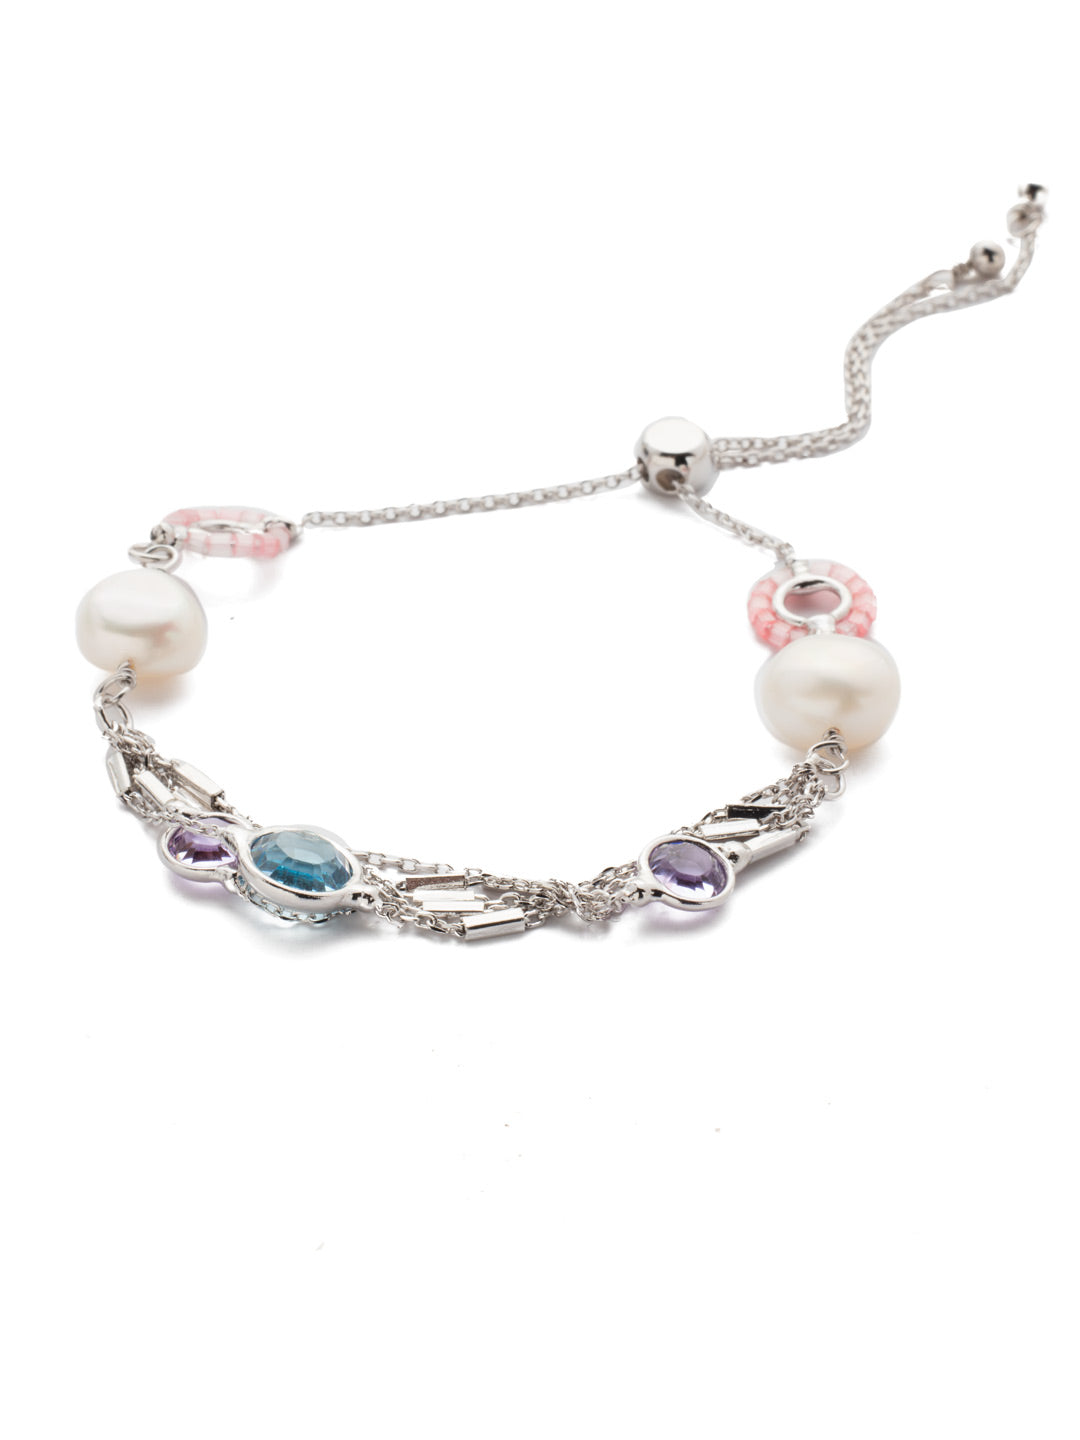 Luminous Slider Bracelet - BEK2RHTUL